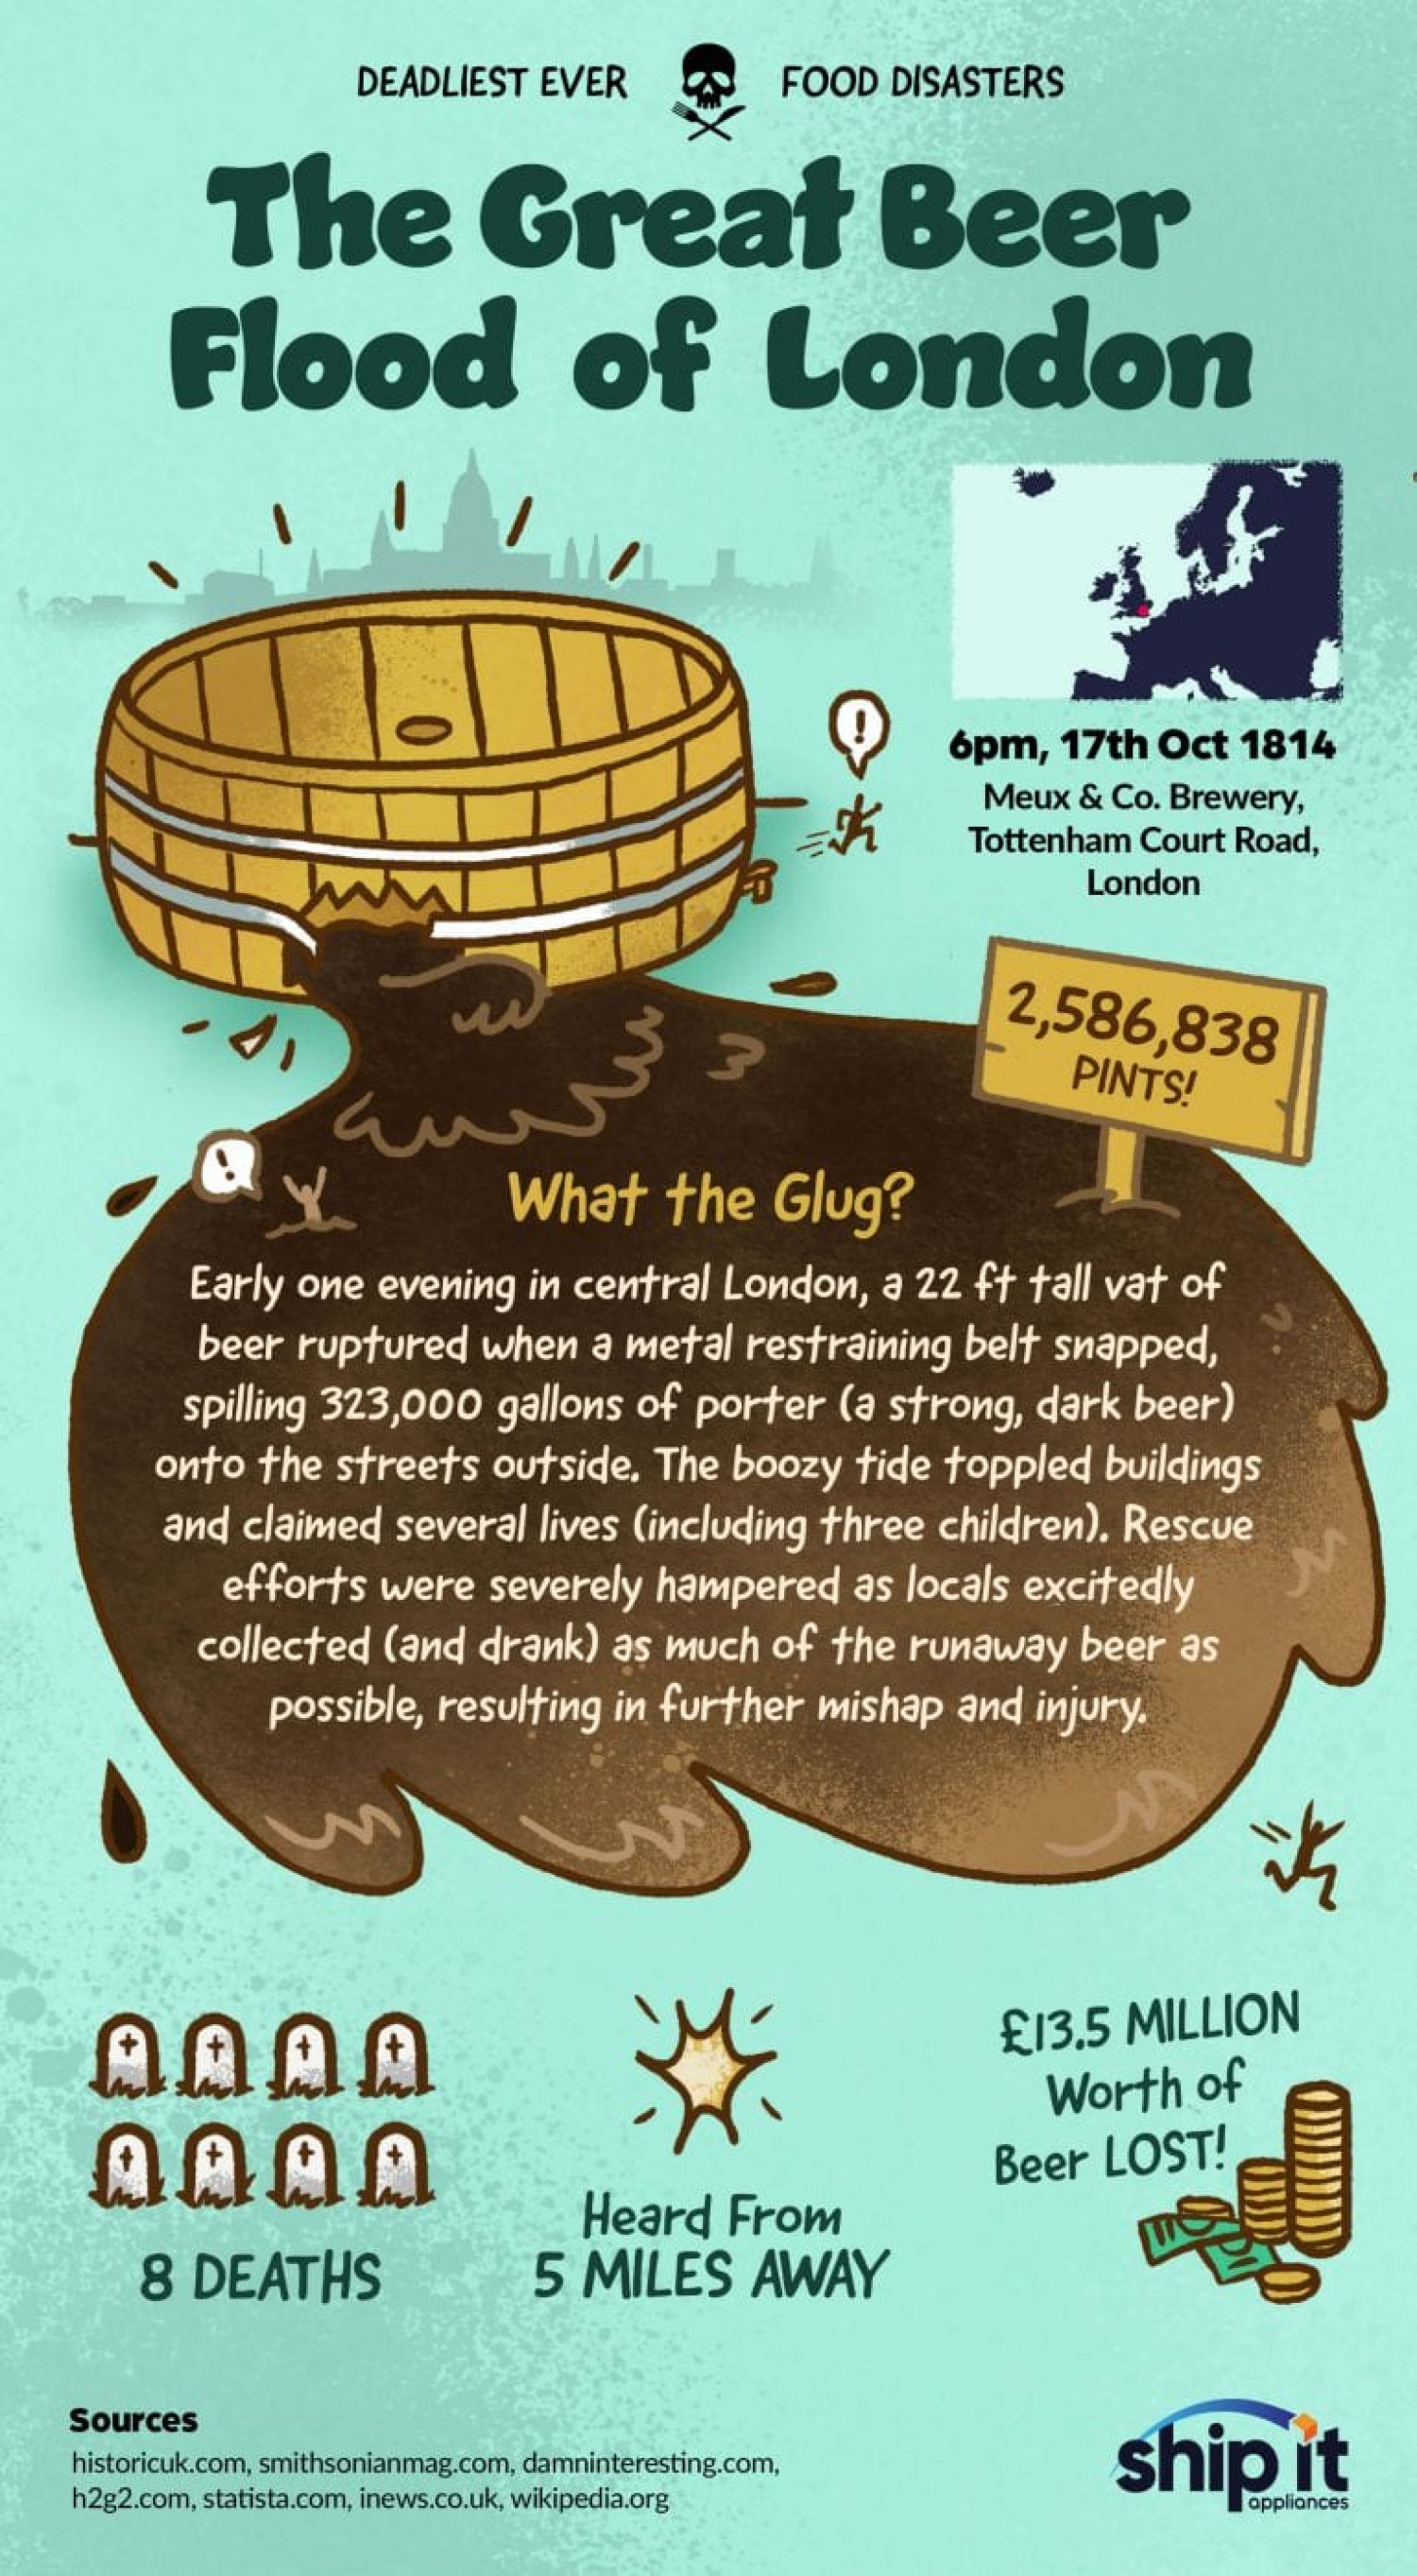 The Great Beer Flood of London  Infographic